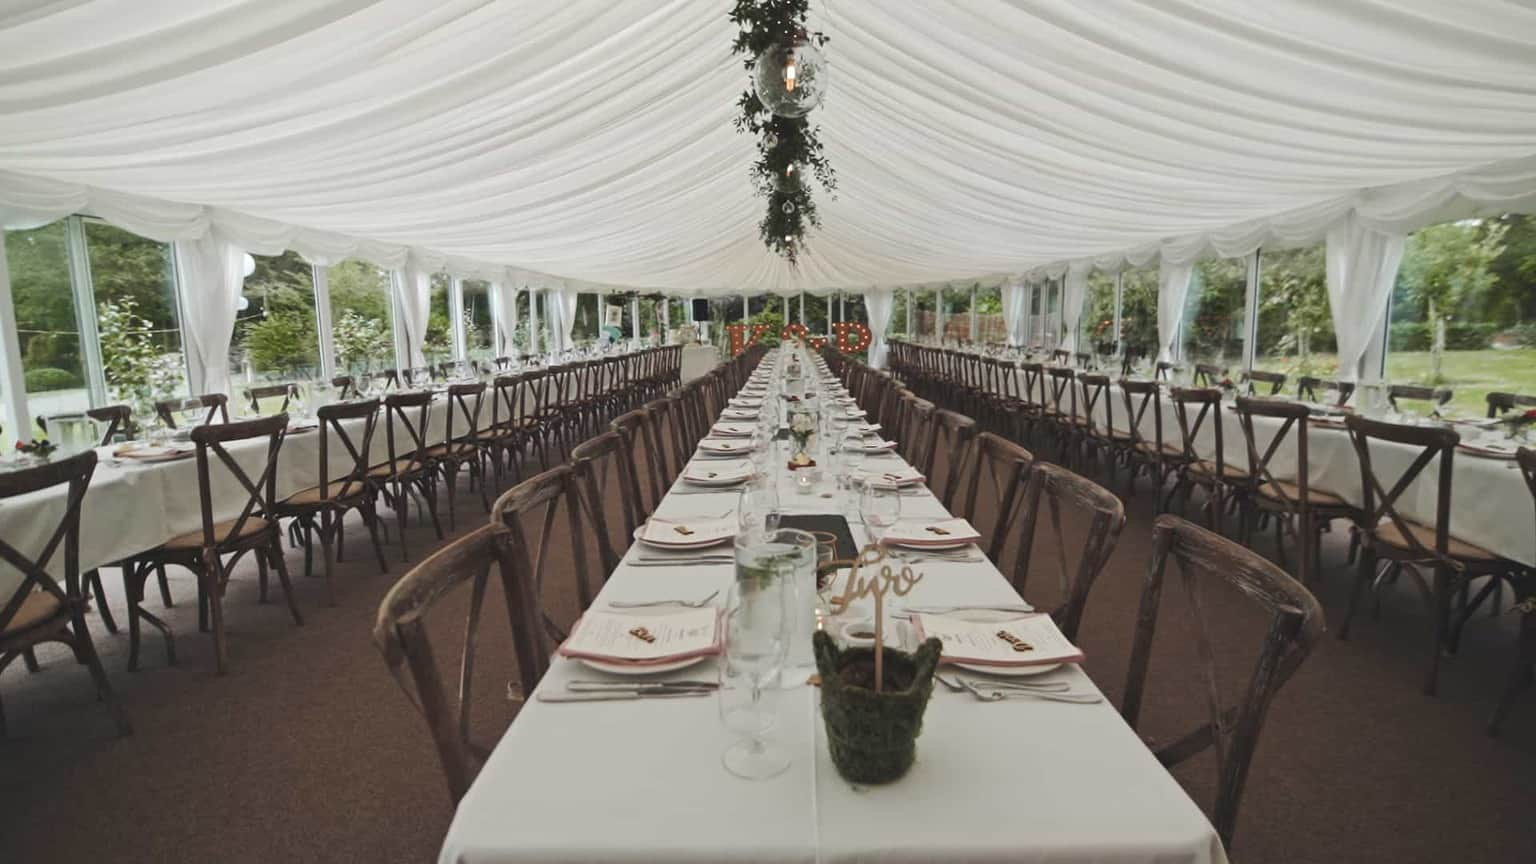 Marque view at wedding decorations before meal